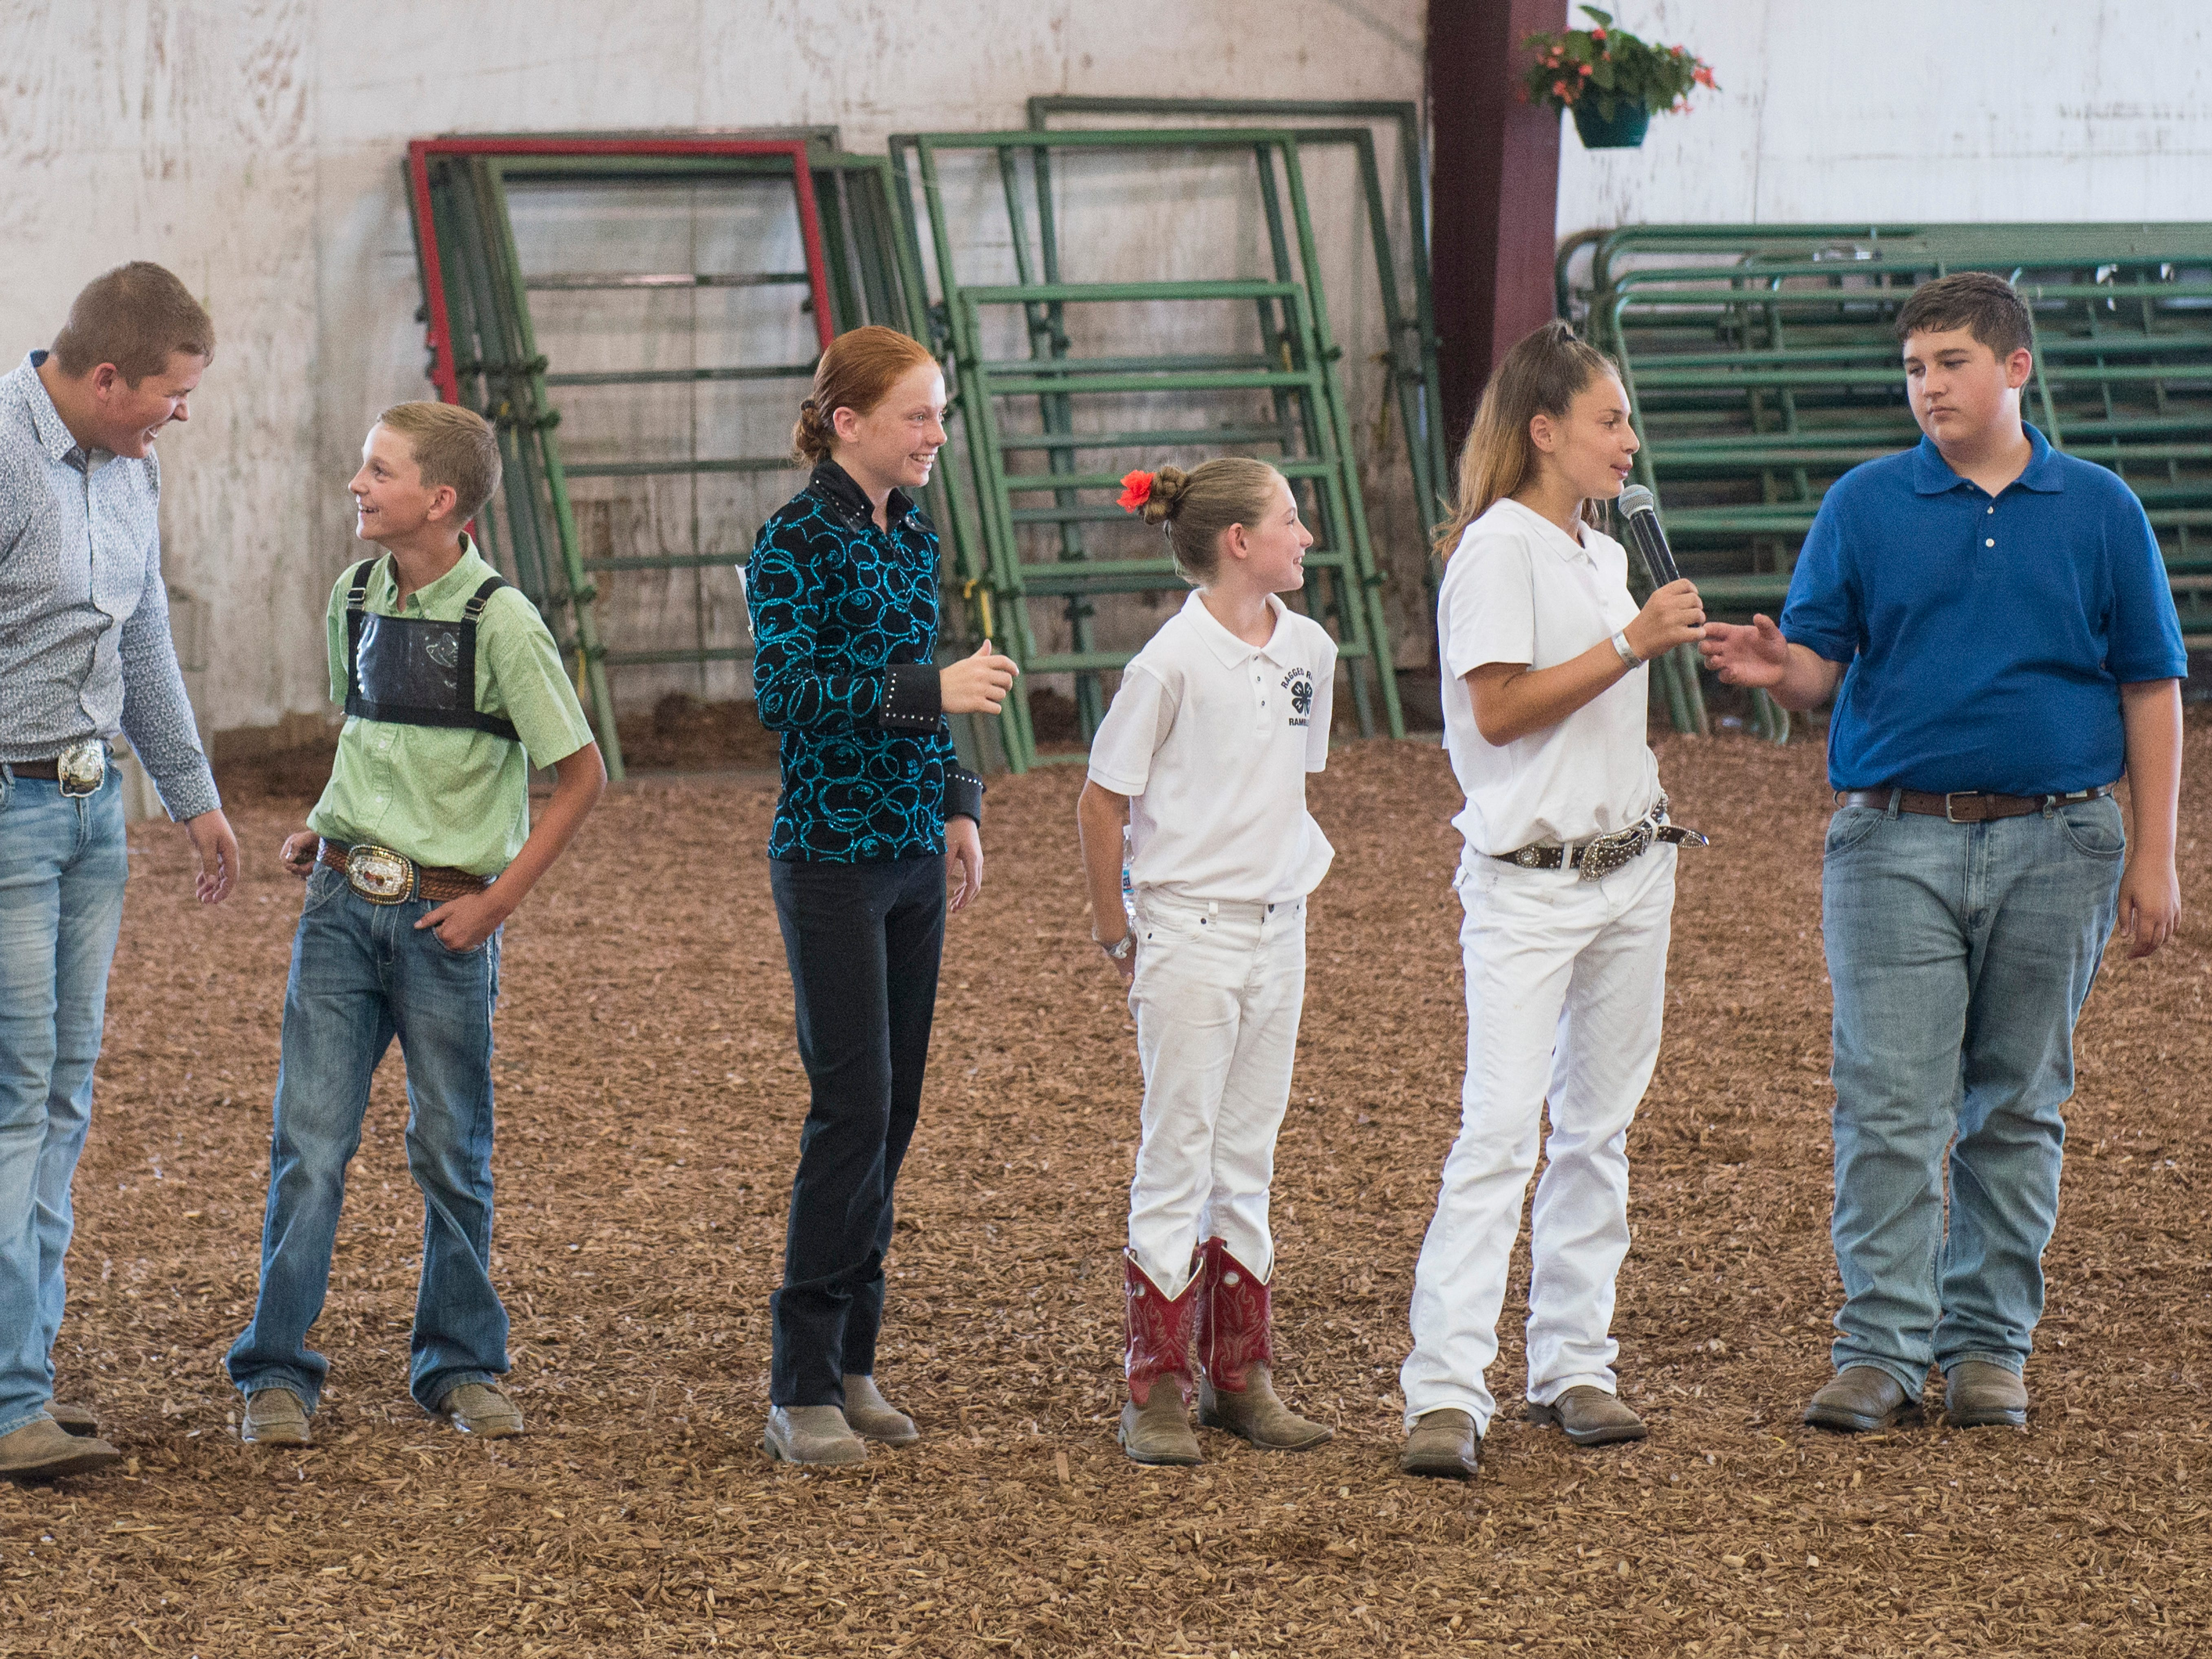 Contestants introduce themselves to the crowd during the Showman of Showmen Contest in Large Animals at the Ross County Fair on August 10, 2018, in Chillicothe, Ohio.